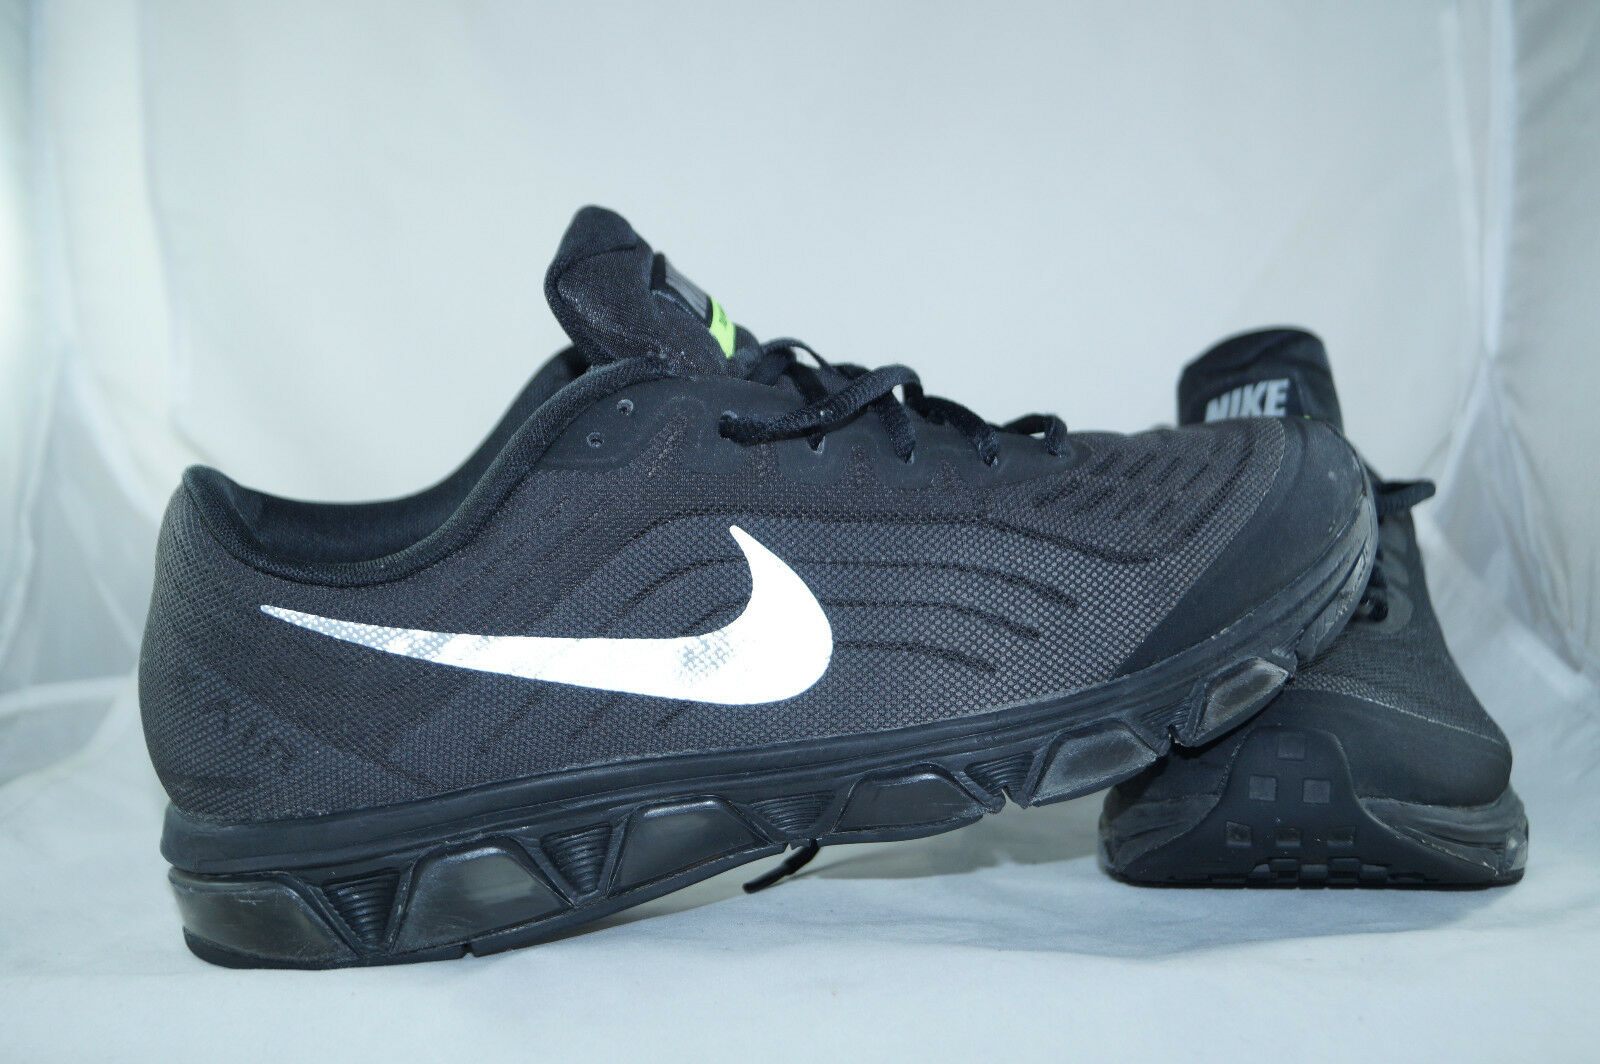 Nike Air Max tailwind 6 talla  45,5 - reflectante plata zapatillas